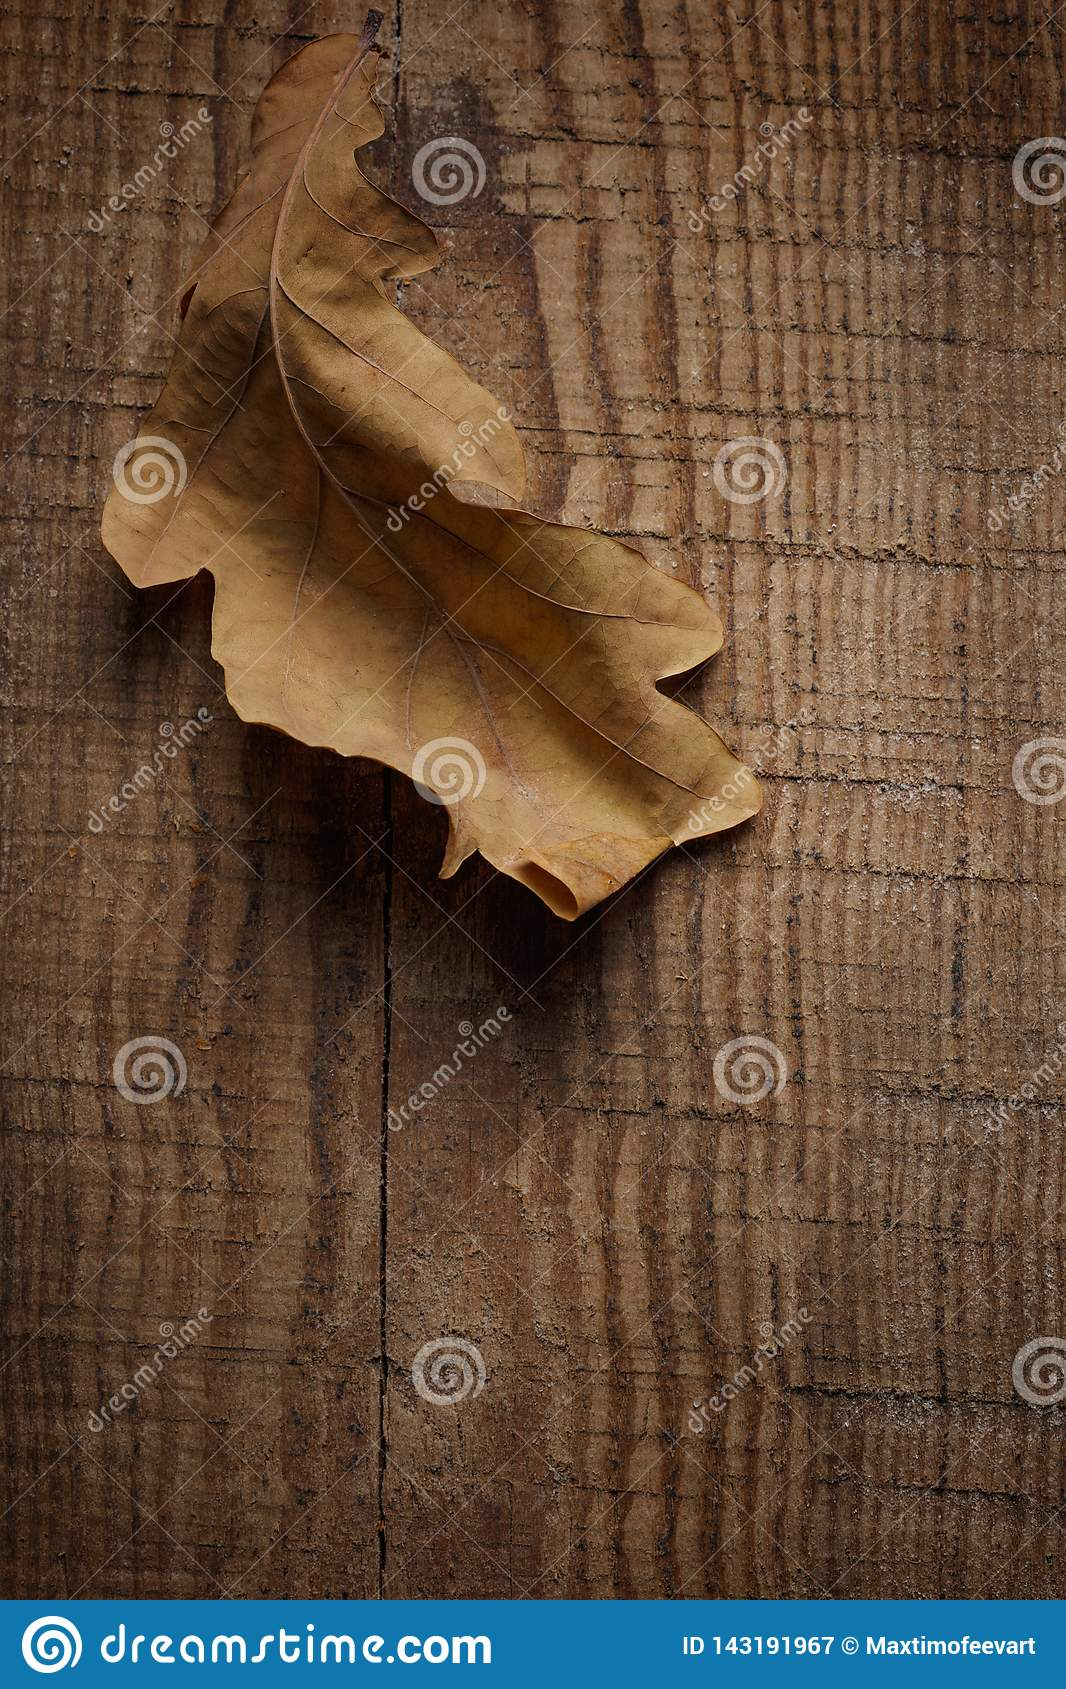 dry leaves on wooden background